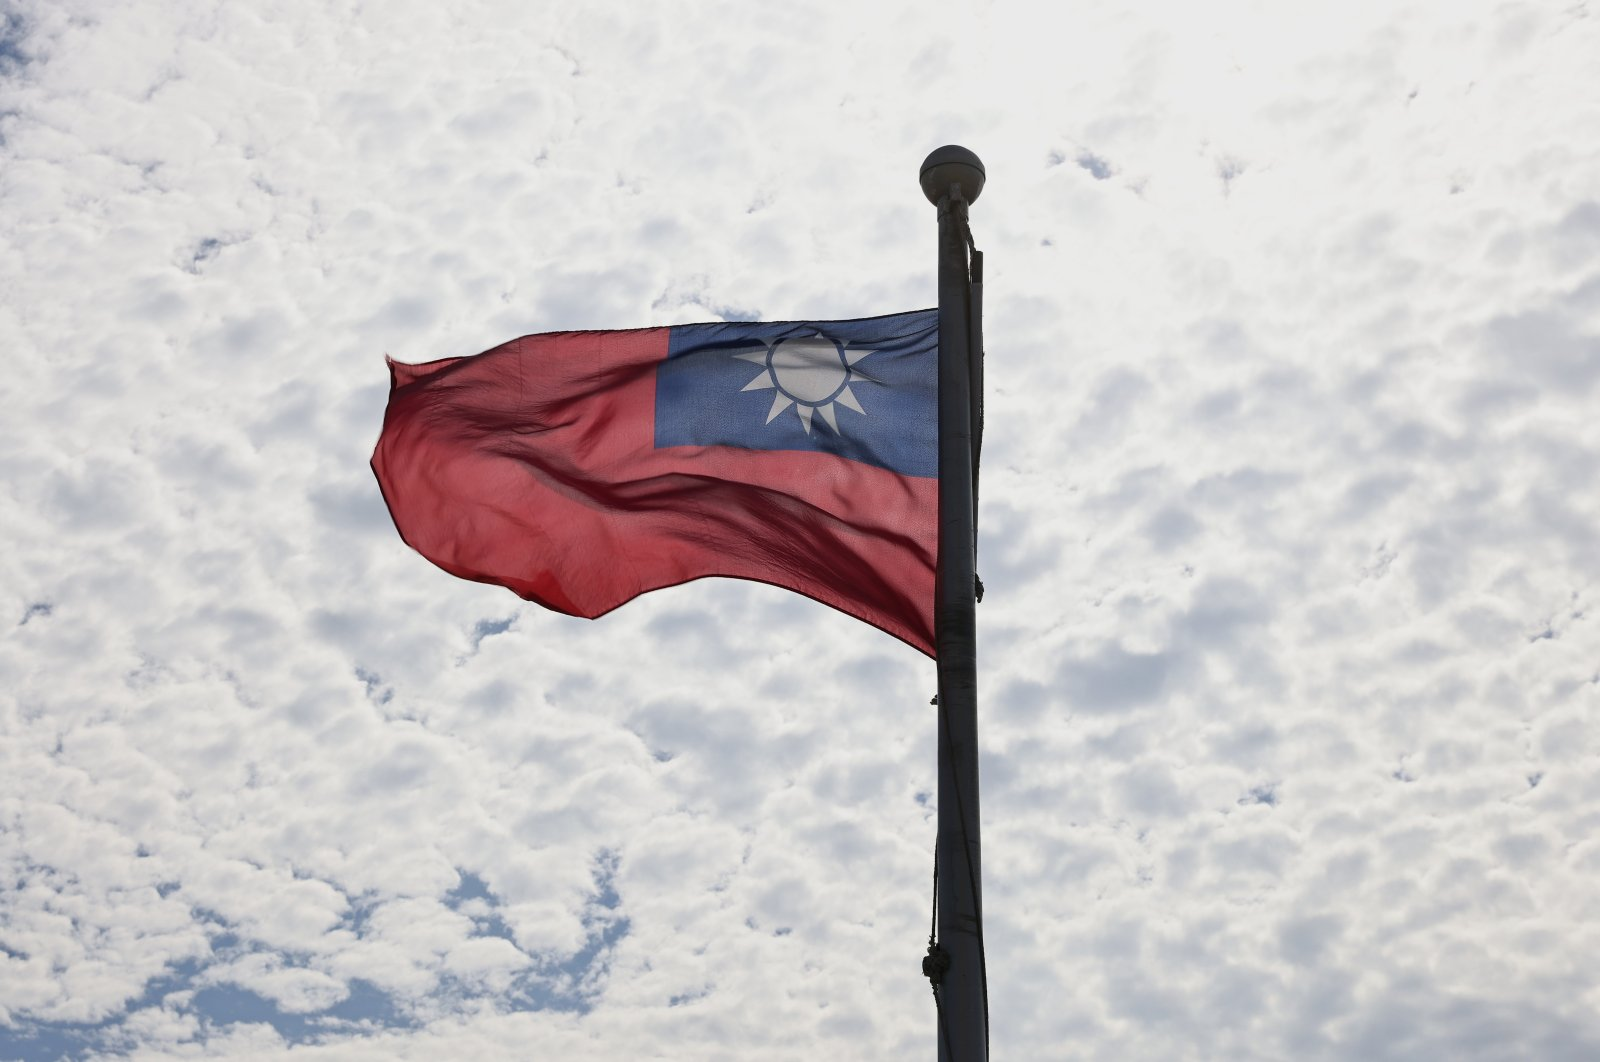 A Taiwanese flag flaps in the wind in Taoyuan, Taiwan, June 30, 2021. (Reuters Photo)